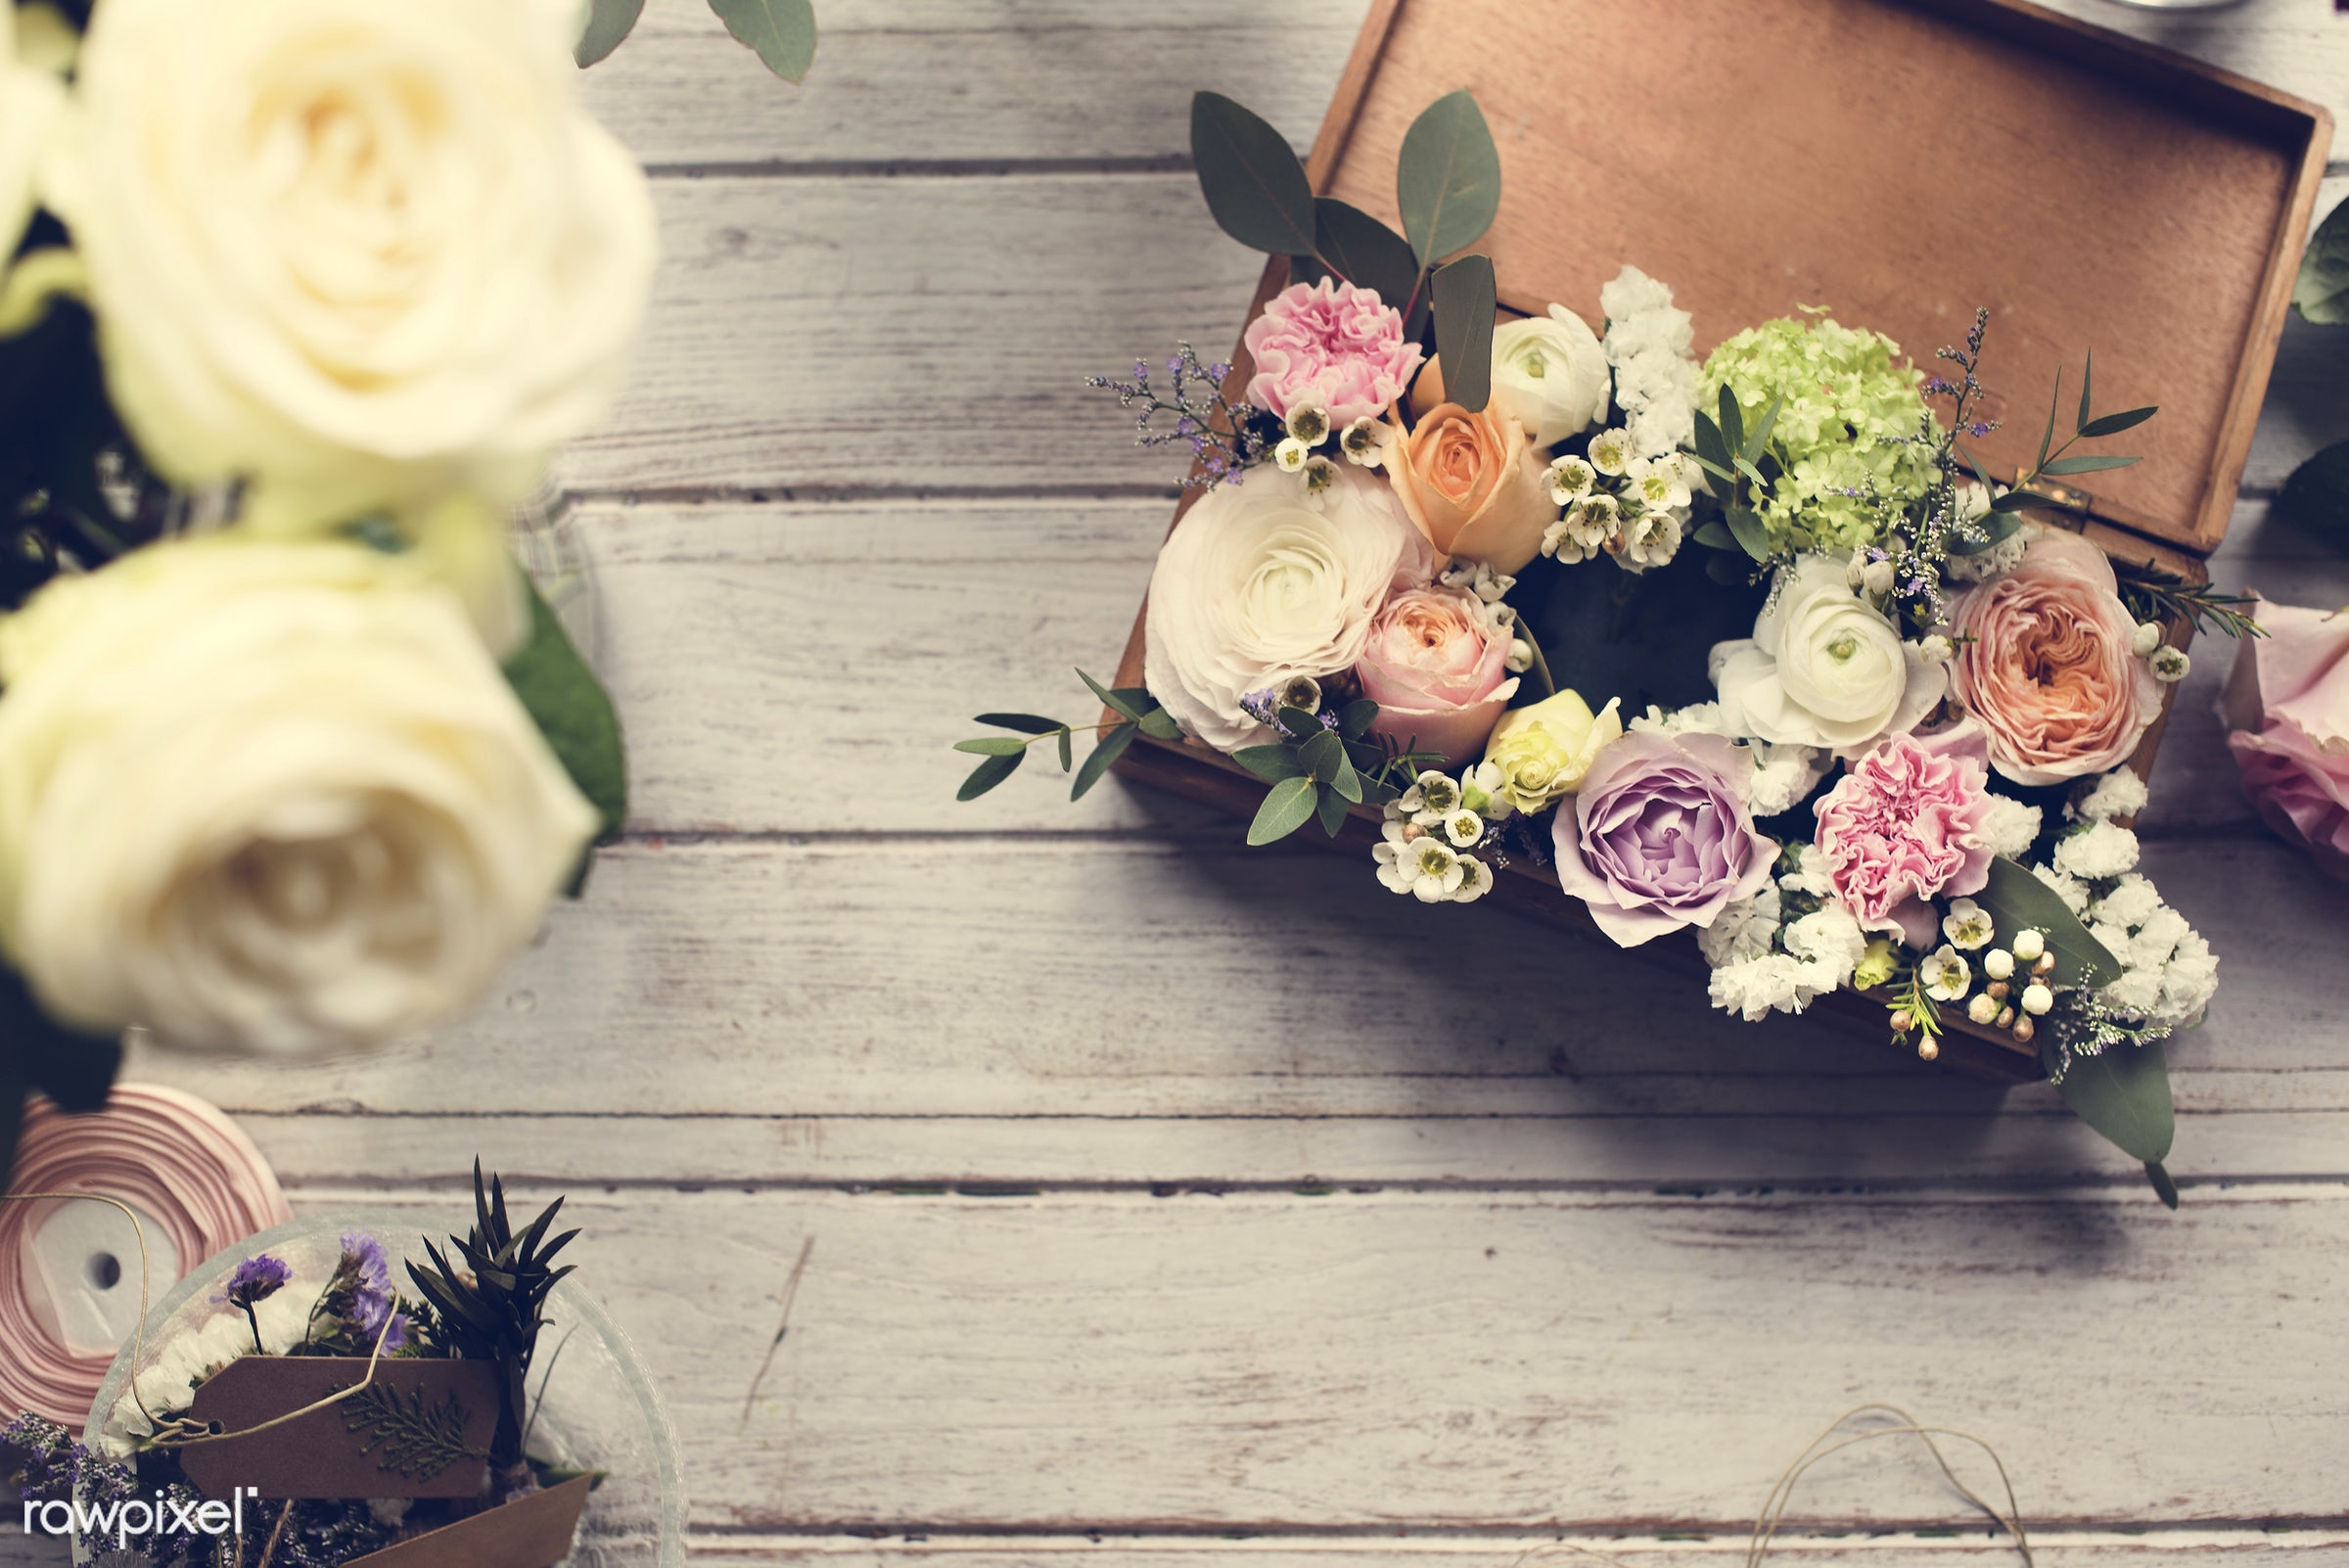 plant, bouquet, decorative, blossom, decor, fresh, flowers, cheerful, flower, romance, decoration, flora, romantic, bloom,...